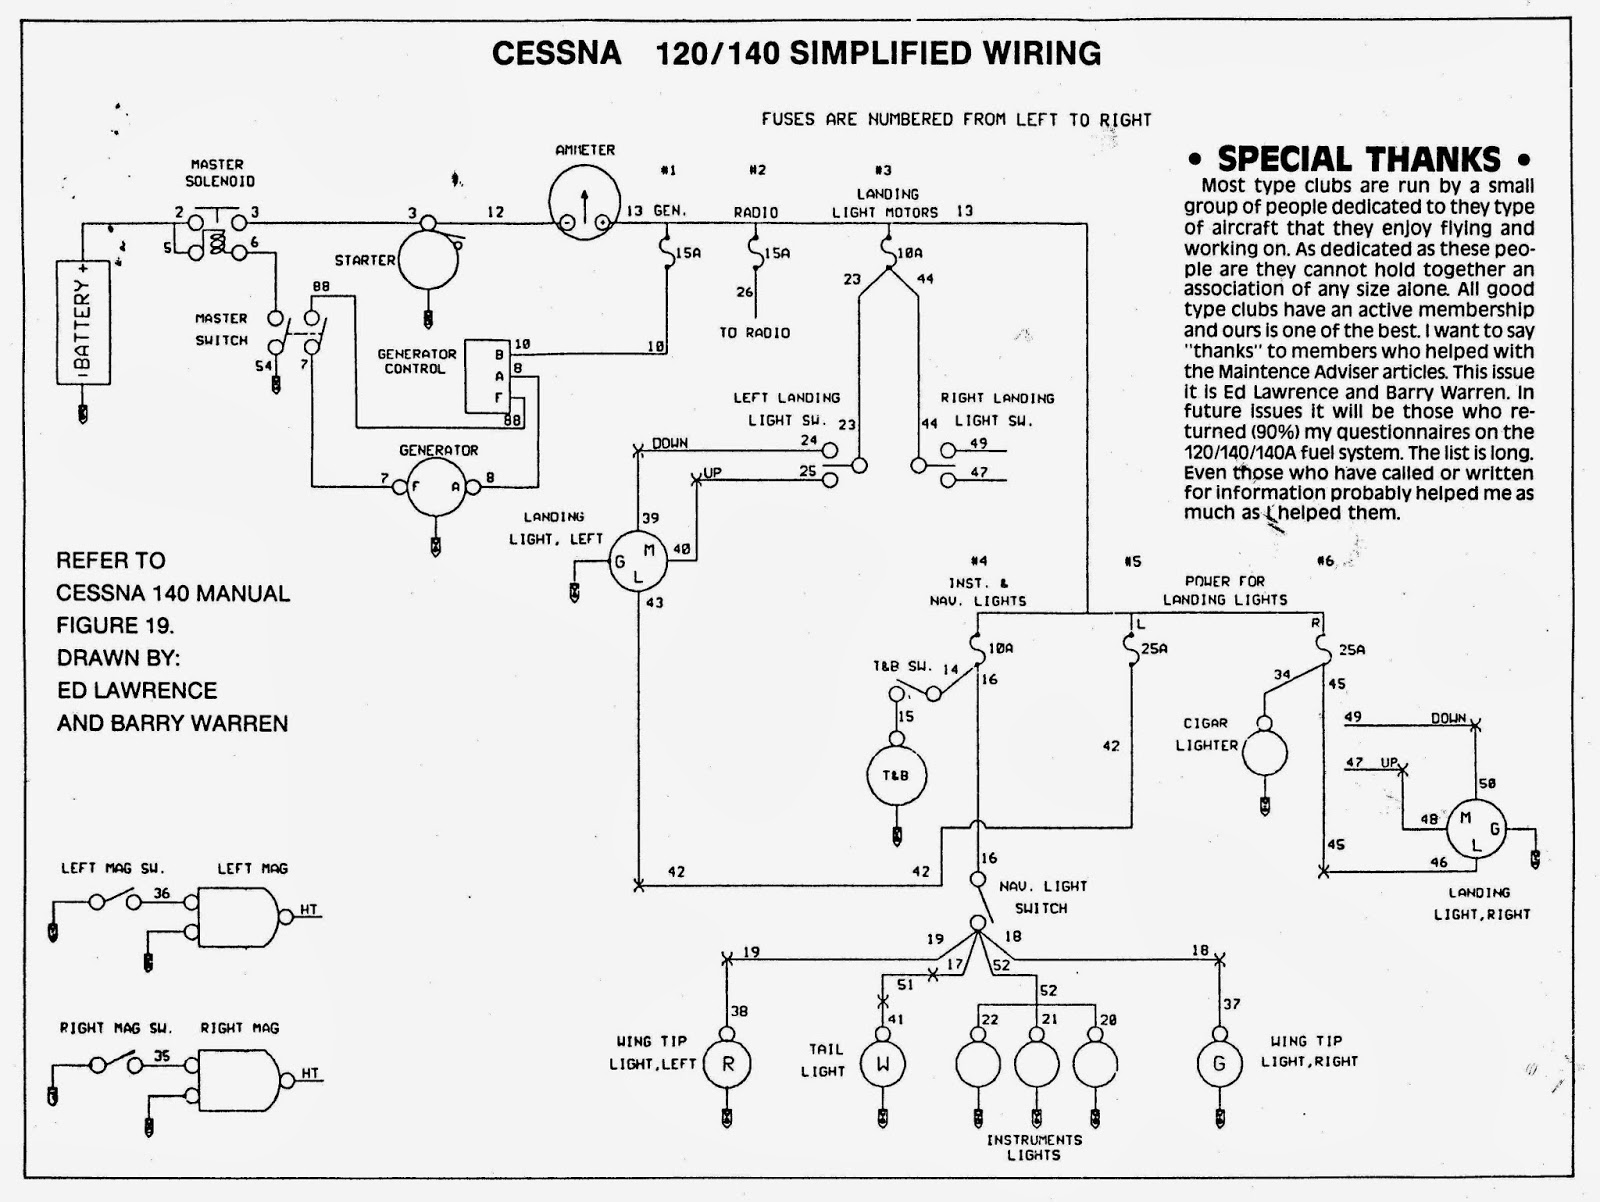 Stunning Cessna 150 Wiring Diagram Pictures Inspiration ...